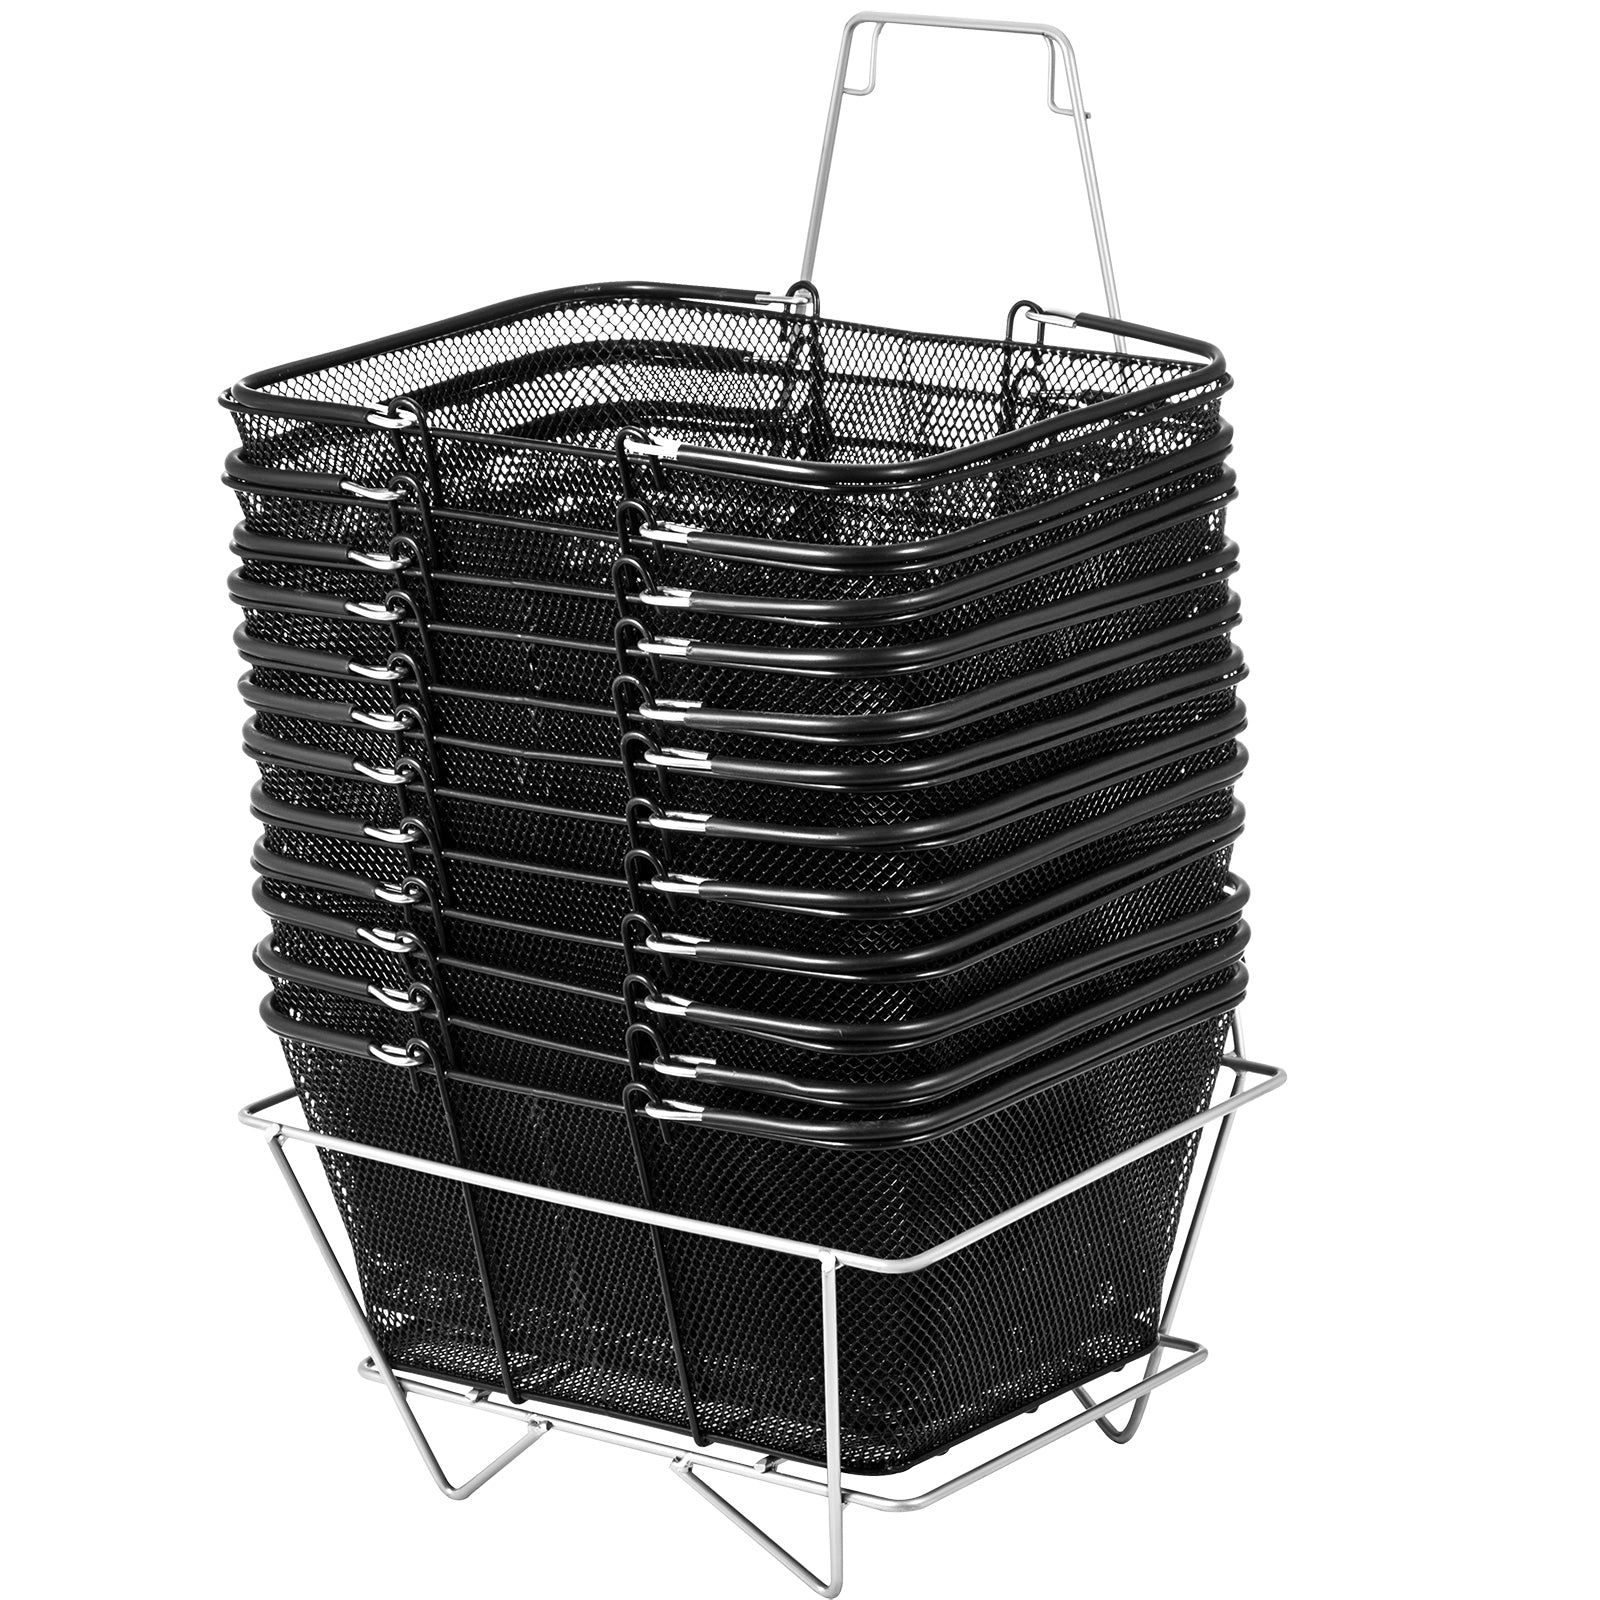 12pcs Black Shopping Baskets 20kg/44lbs Durable Metal Powder Coating Hot Pro